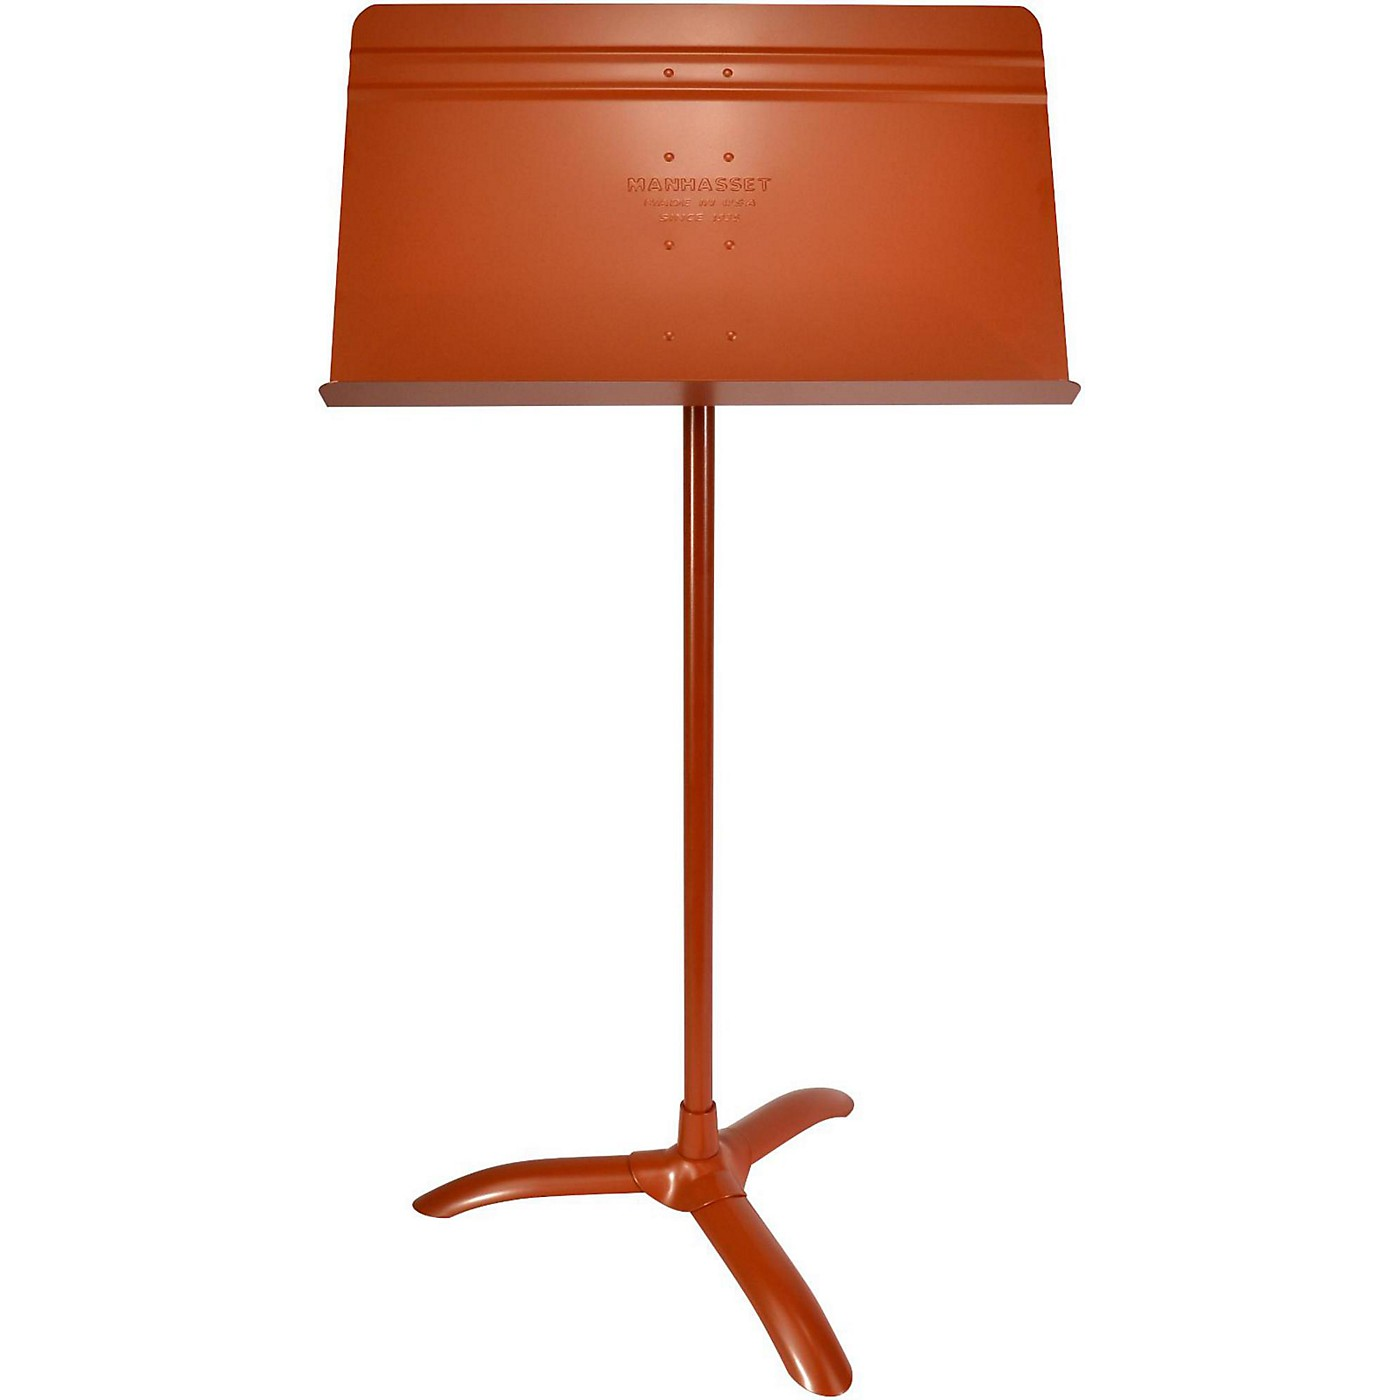 Manhasset Matte Red Symphony Stand thumbnail